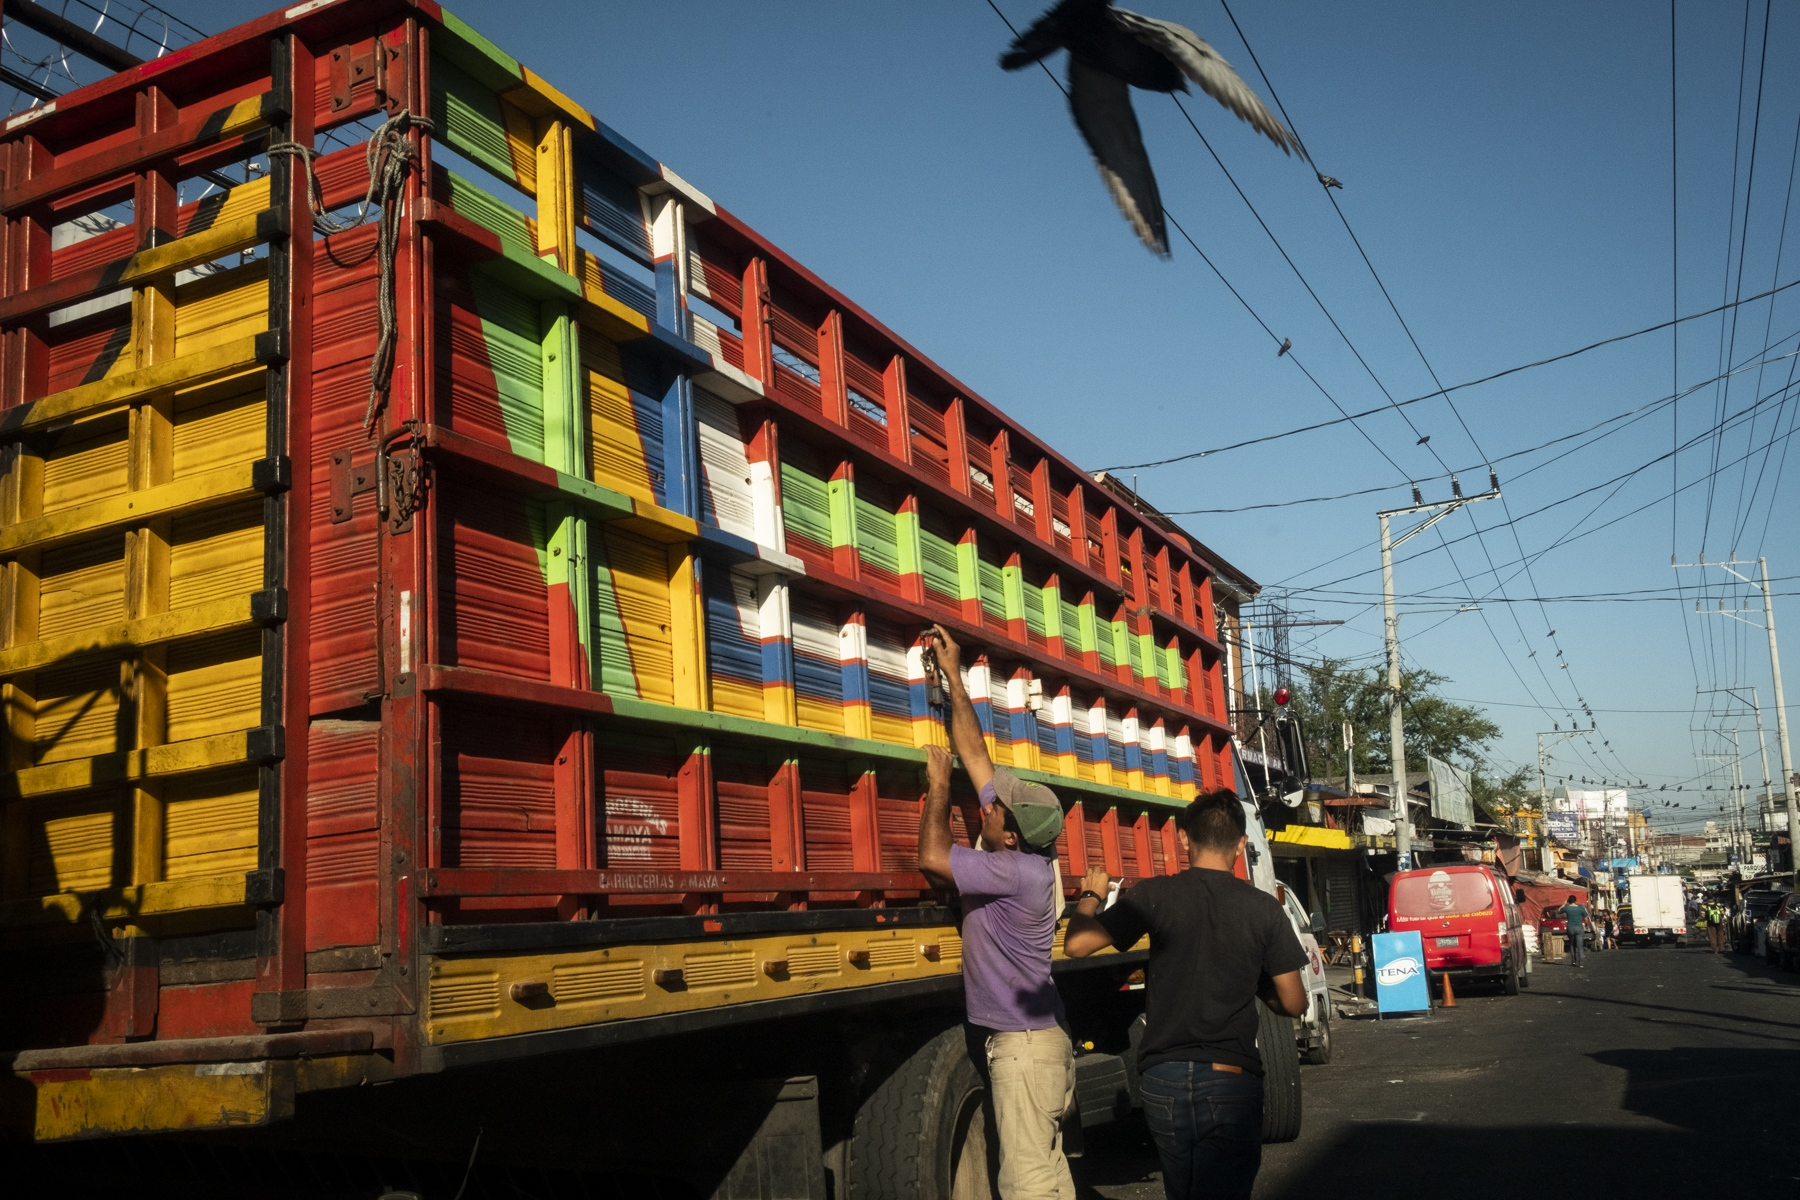 Men unload a truck transporting produce from El Salvador's rural areas at the Central Market in San Salvador.